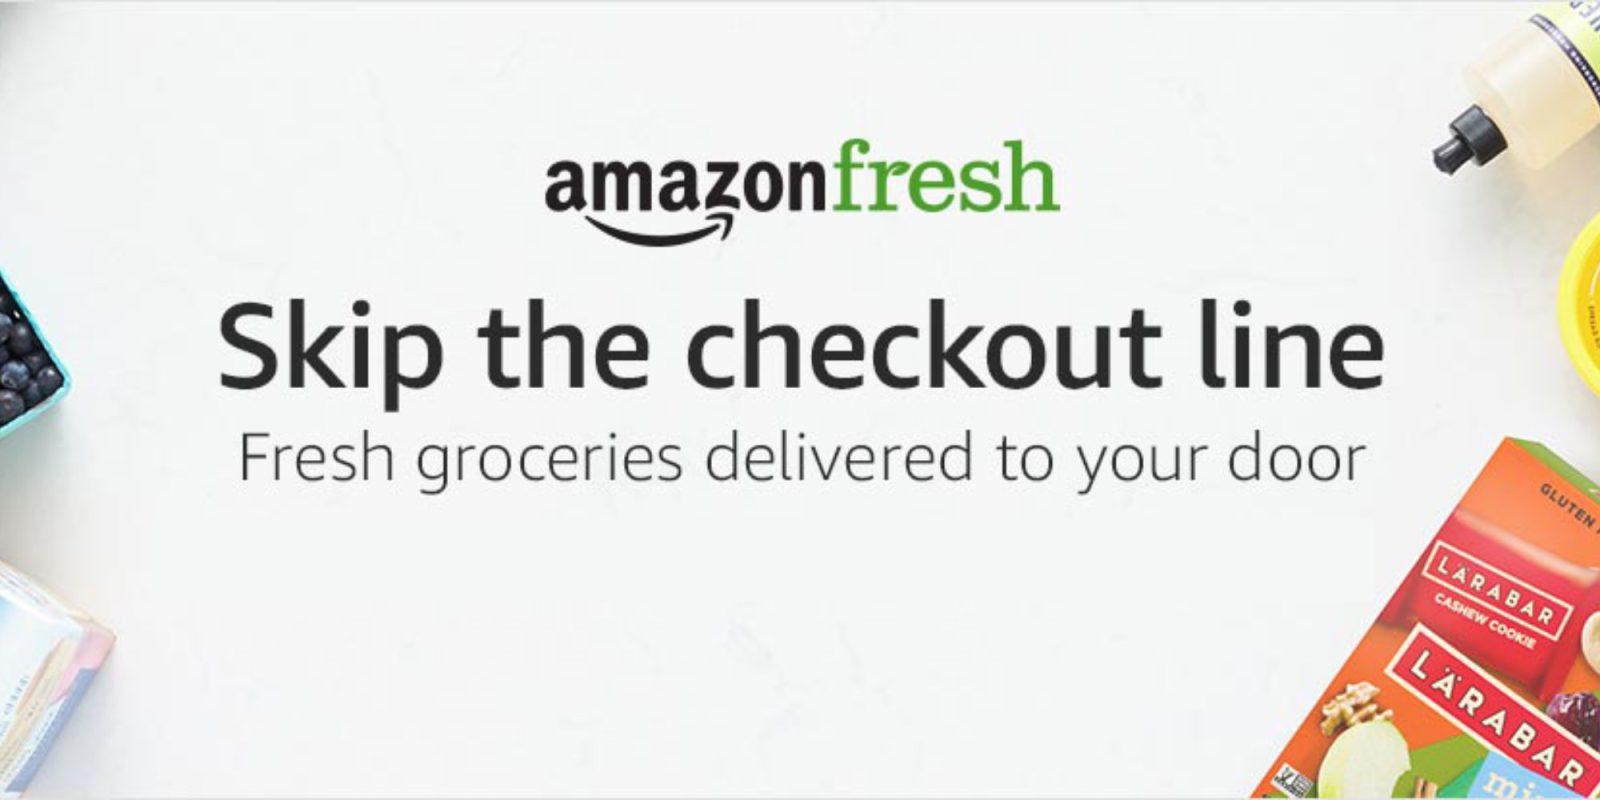 AmazonFresh availability broadens, challenging Walmart and other grocers